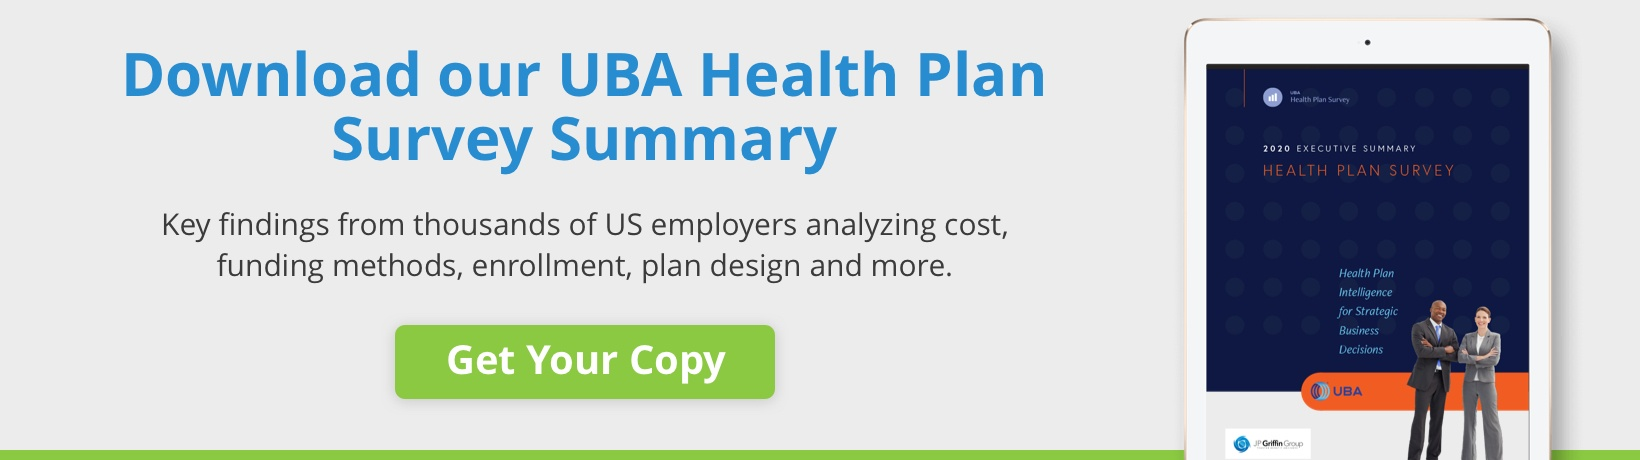 Download our UBA Health Plan Survey Summary